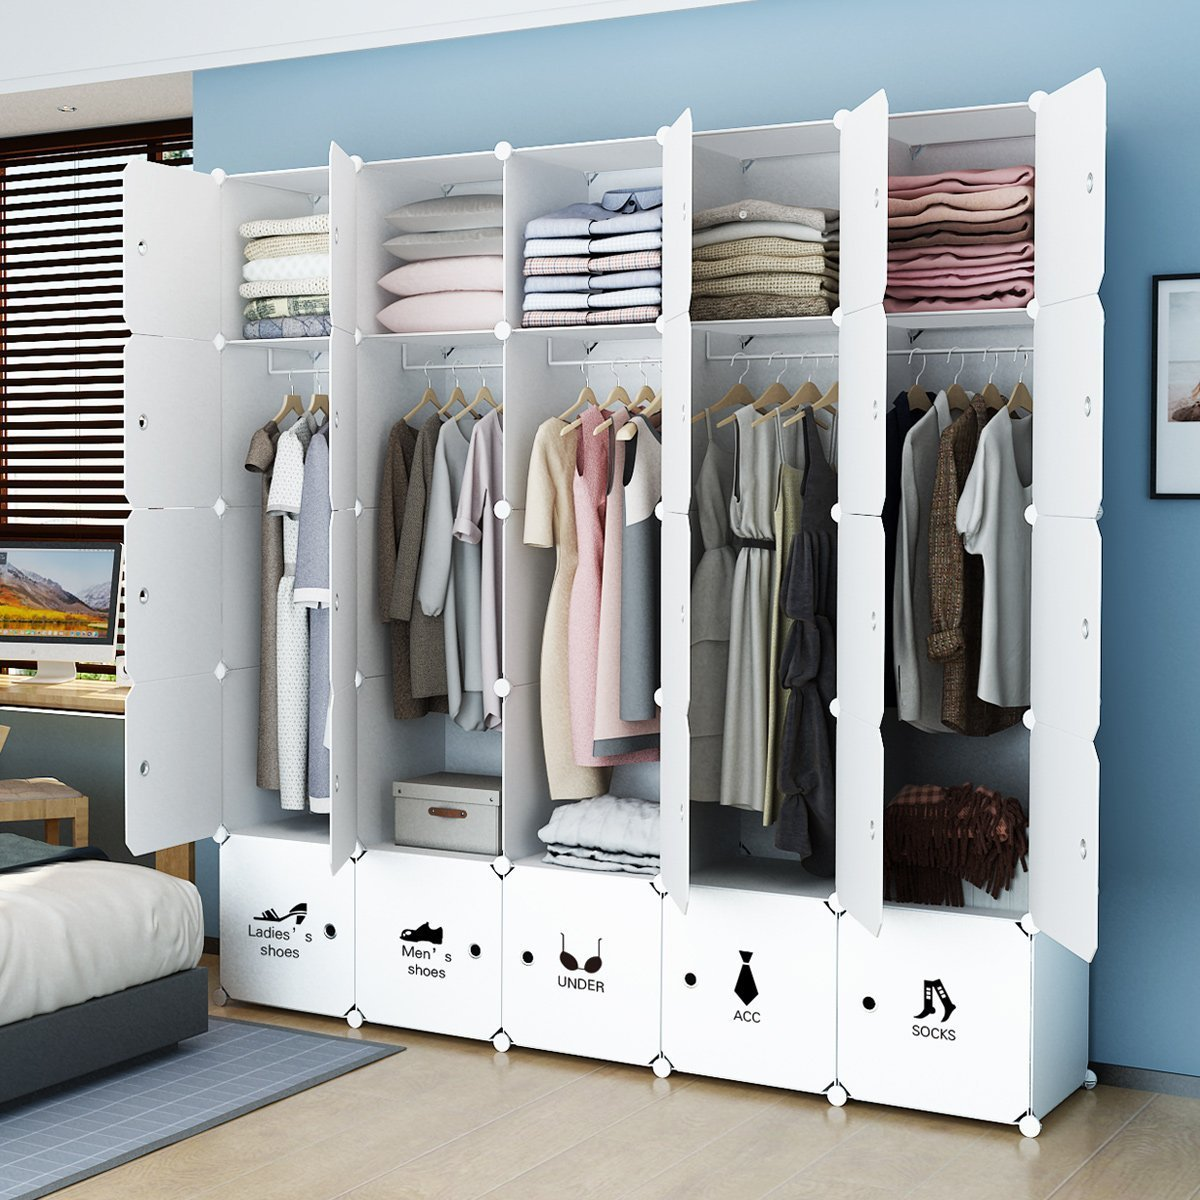 MAGINELS Portable Wardrobe Closet Armoire Cube Storage Organizer for Clothes Bedroom with Drawer White (10 Cubes & 5 Hanging Section) by MAGINELS